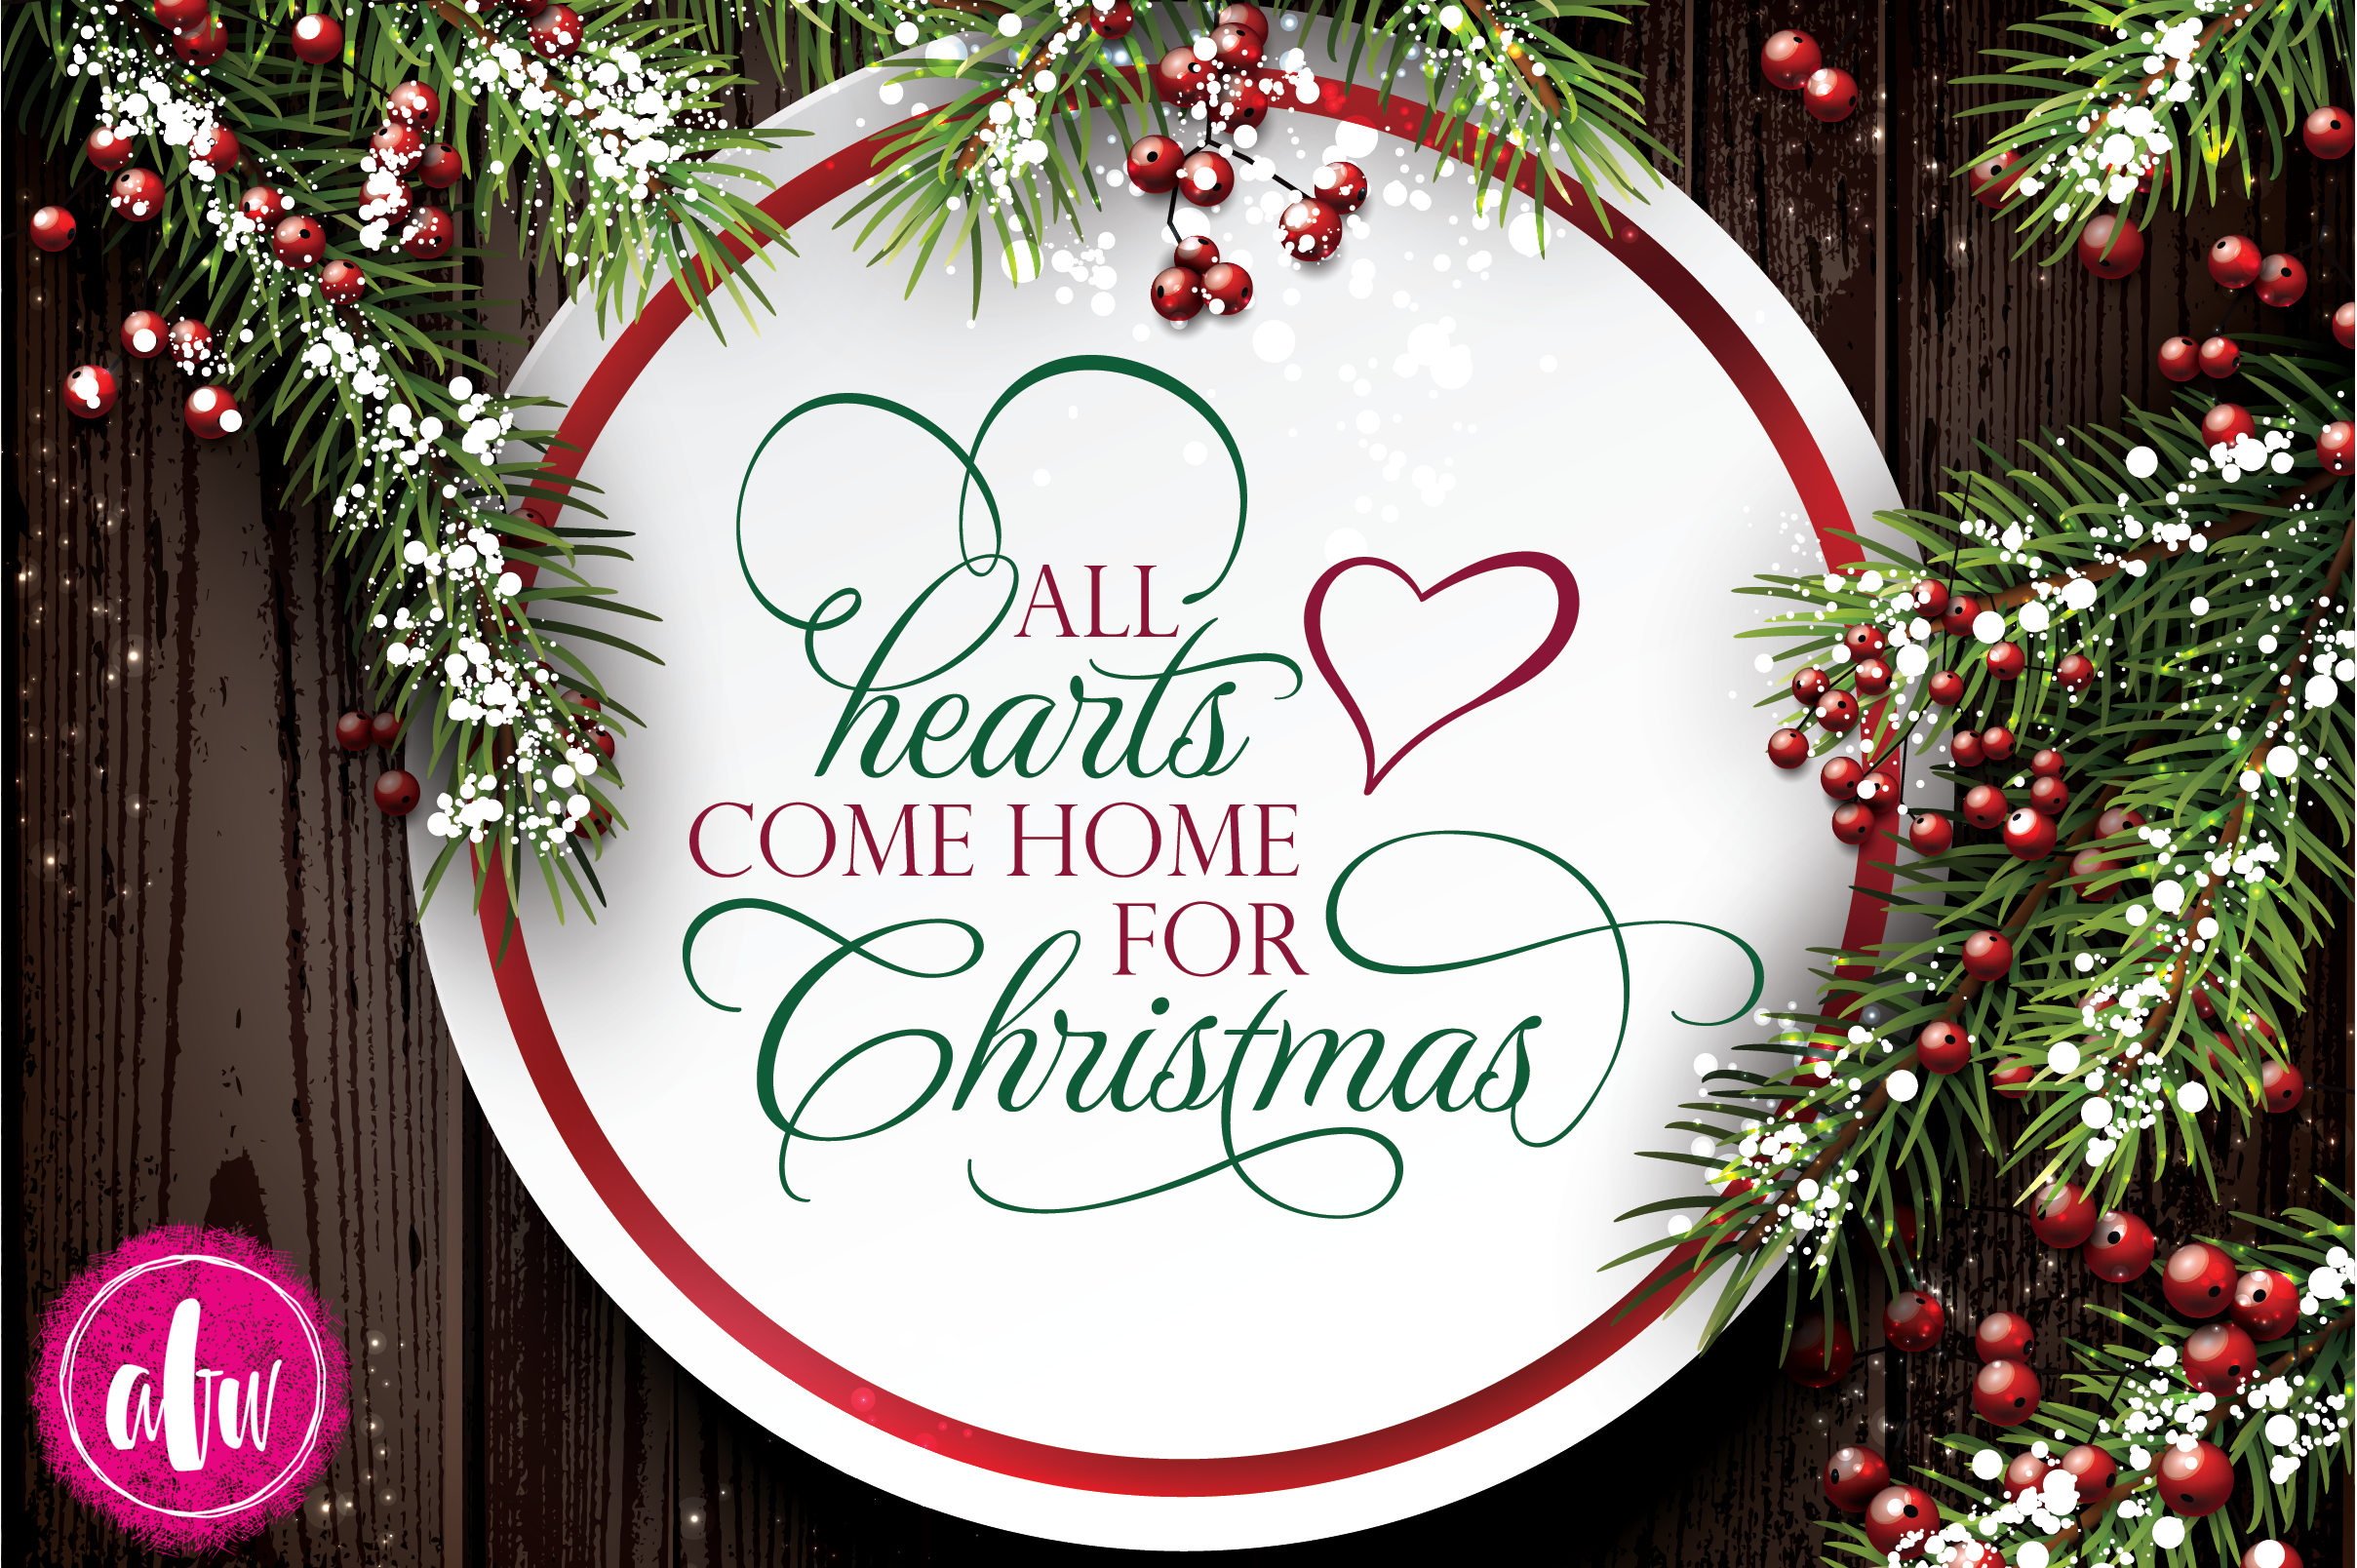 All Hearts Come Home for Christmas - SVG, DXF, EPS Cut File example image 2